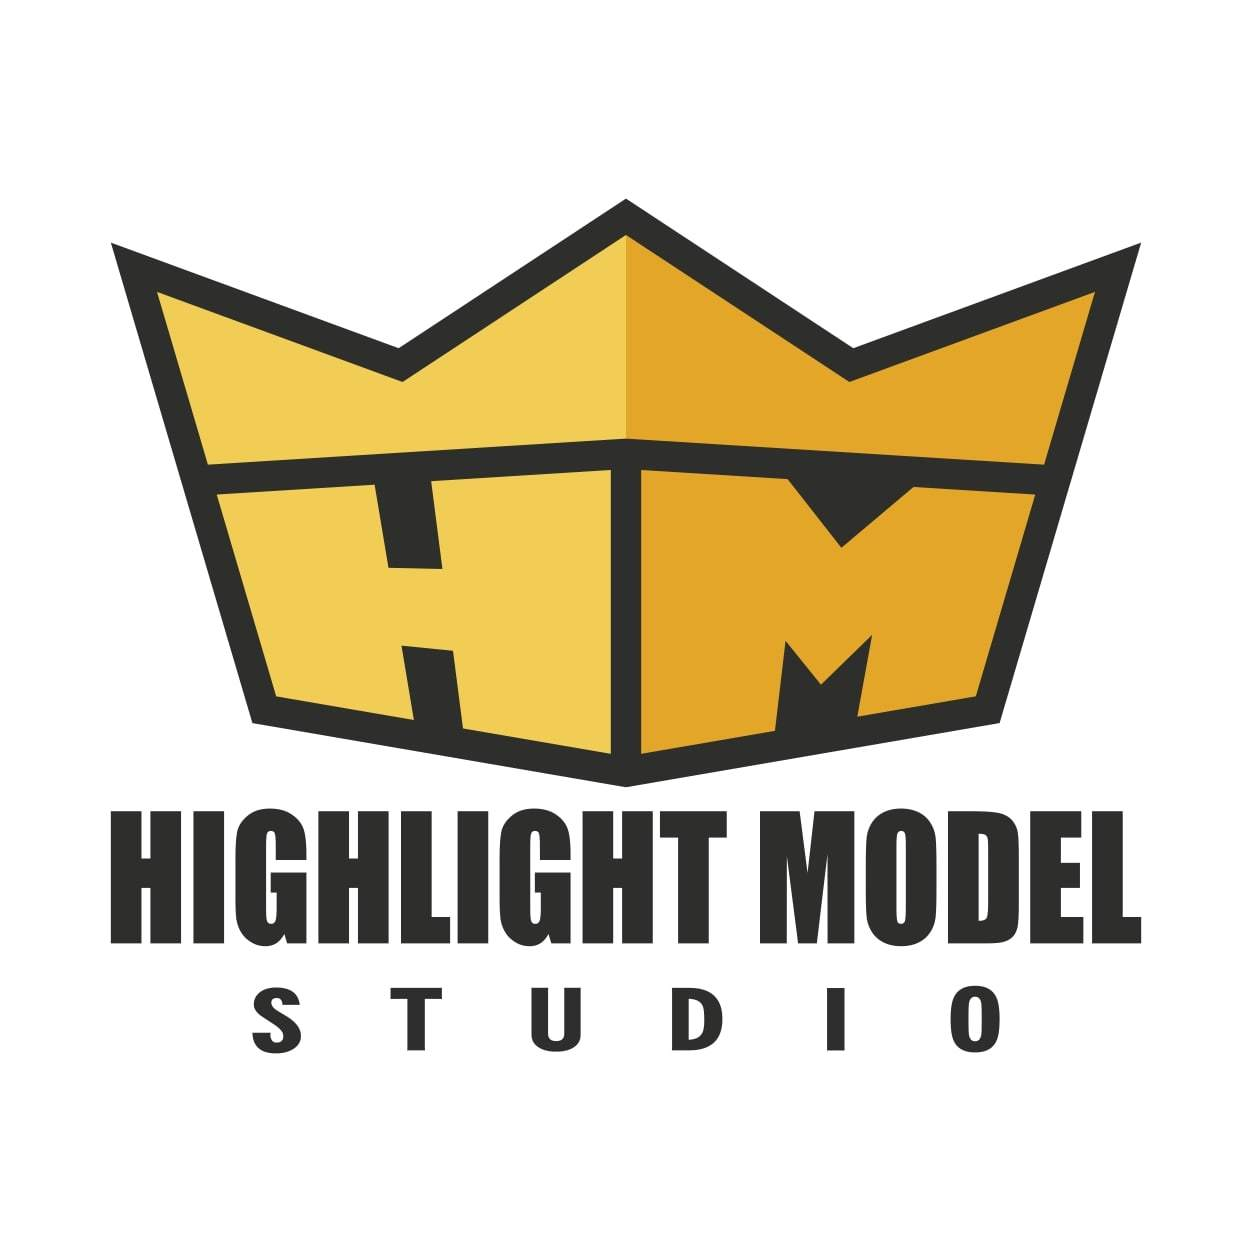 HIGHLIGHT MODEL STUDIO